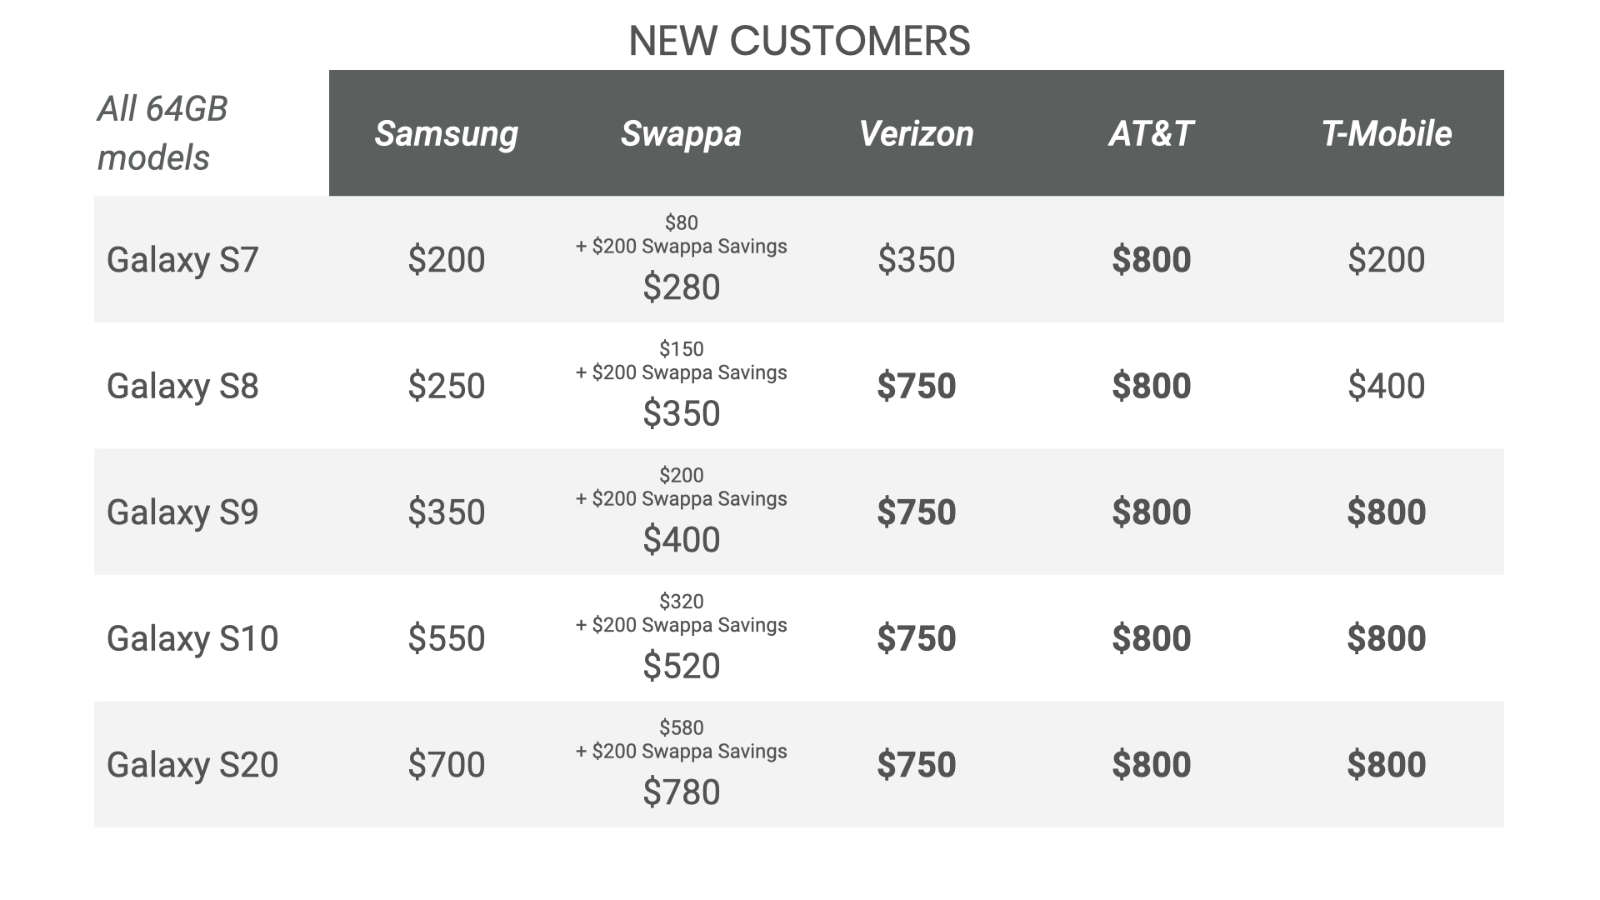 Verizon, AT&T, and T-Mobile offer amazing trade-in deals for people looking to upgrade to the new Galaxy S21